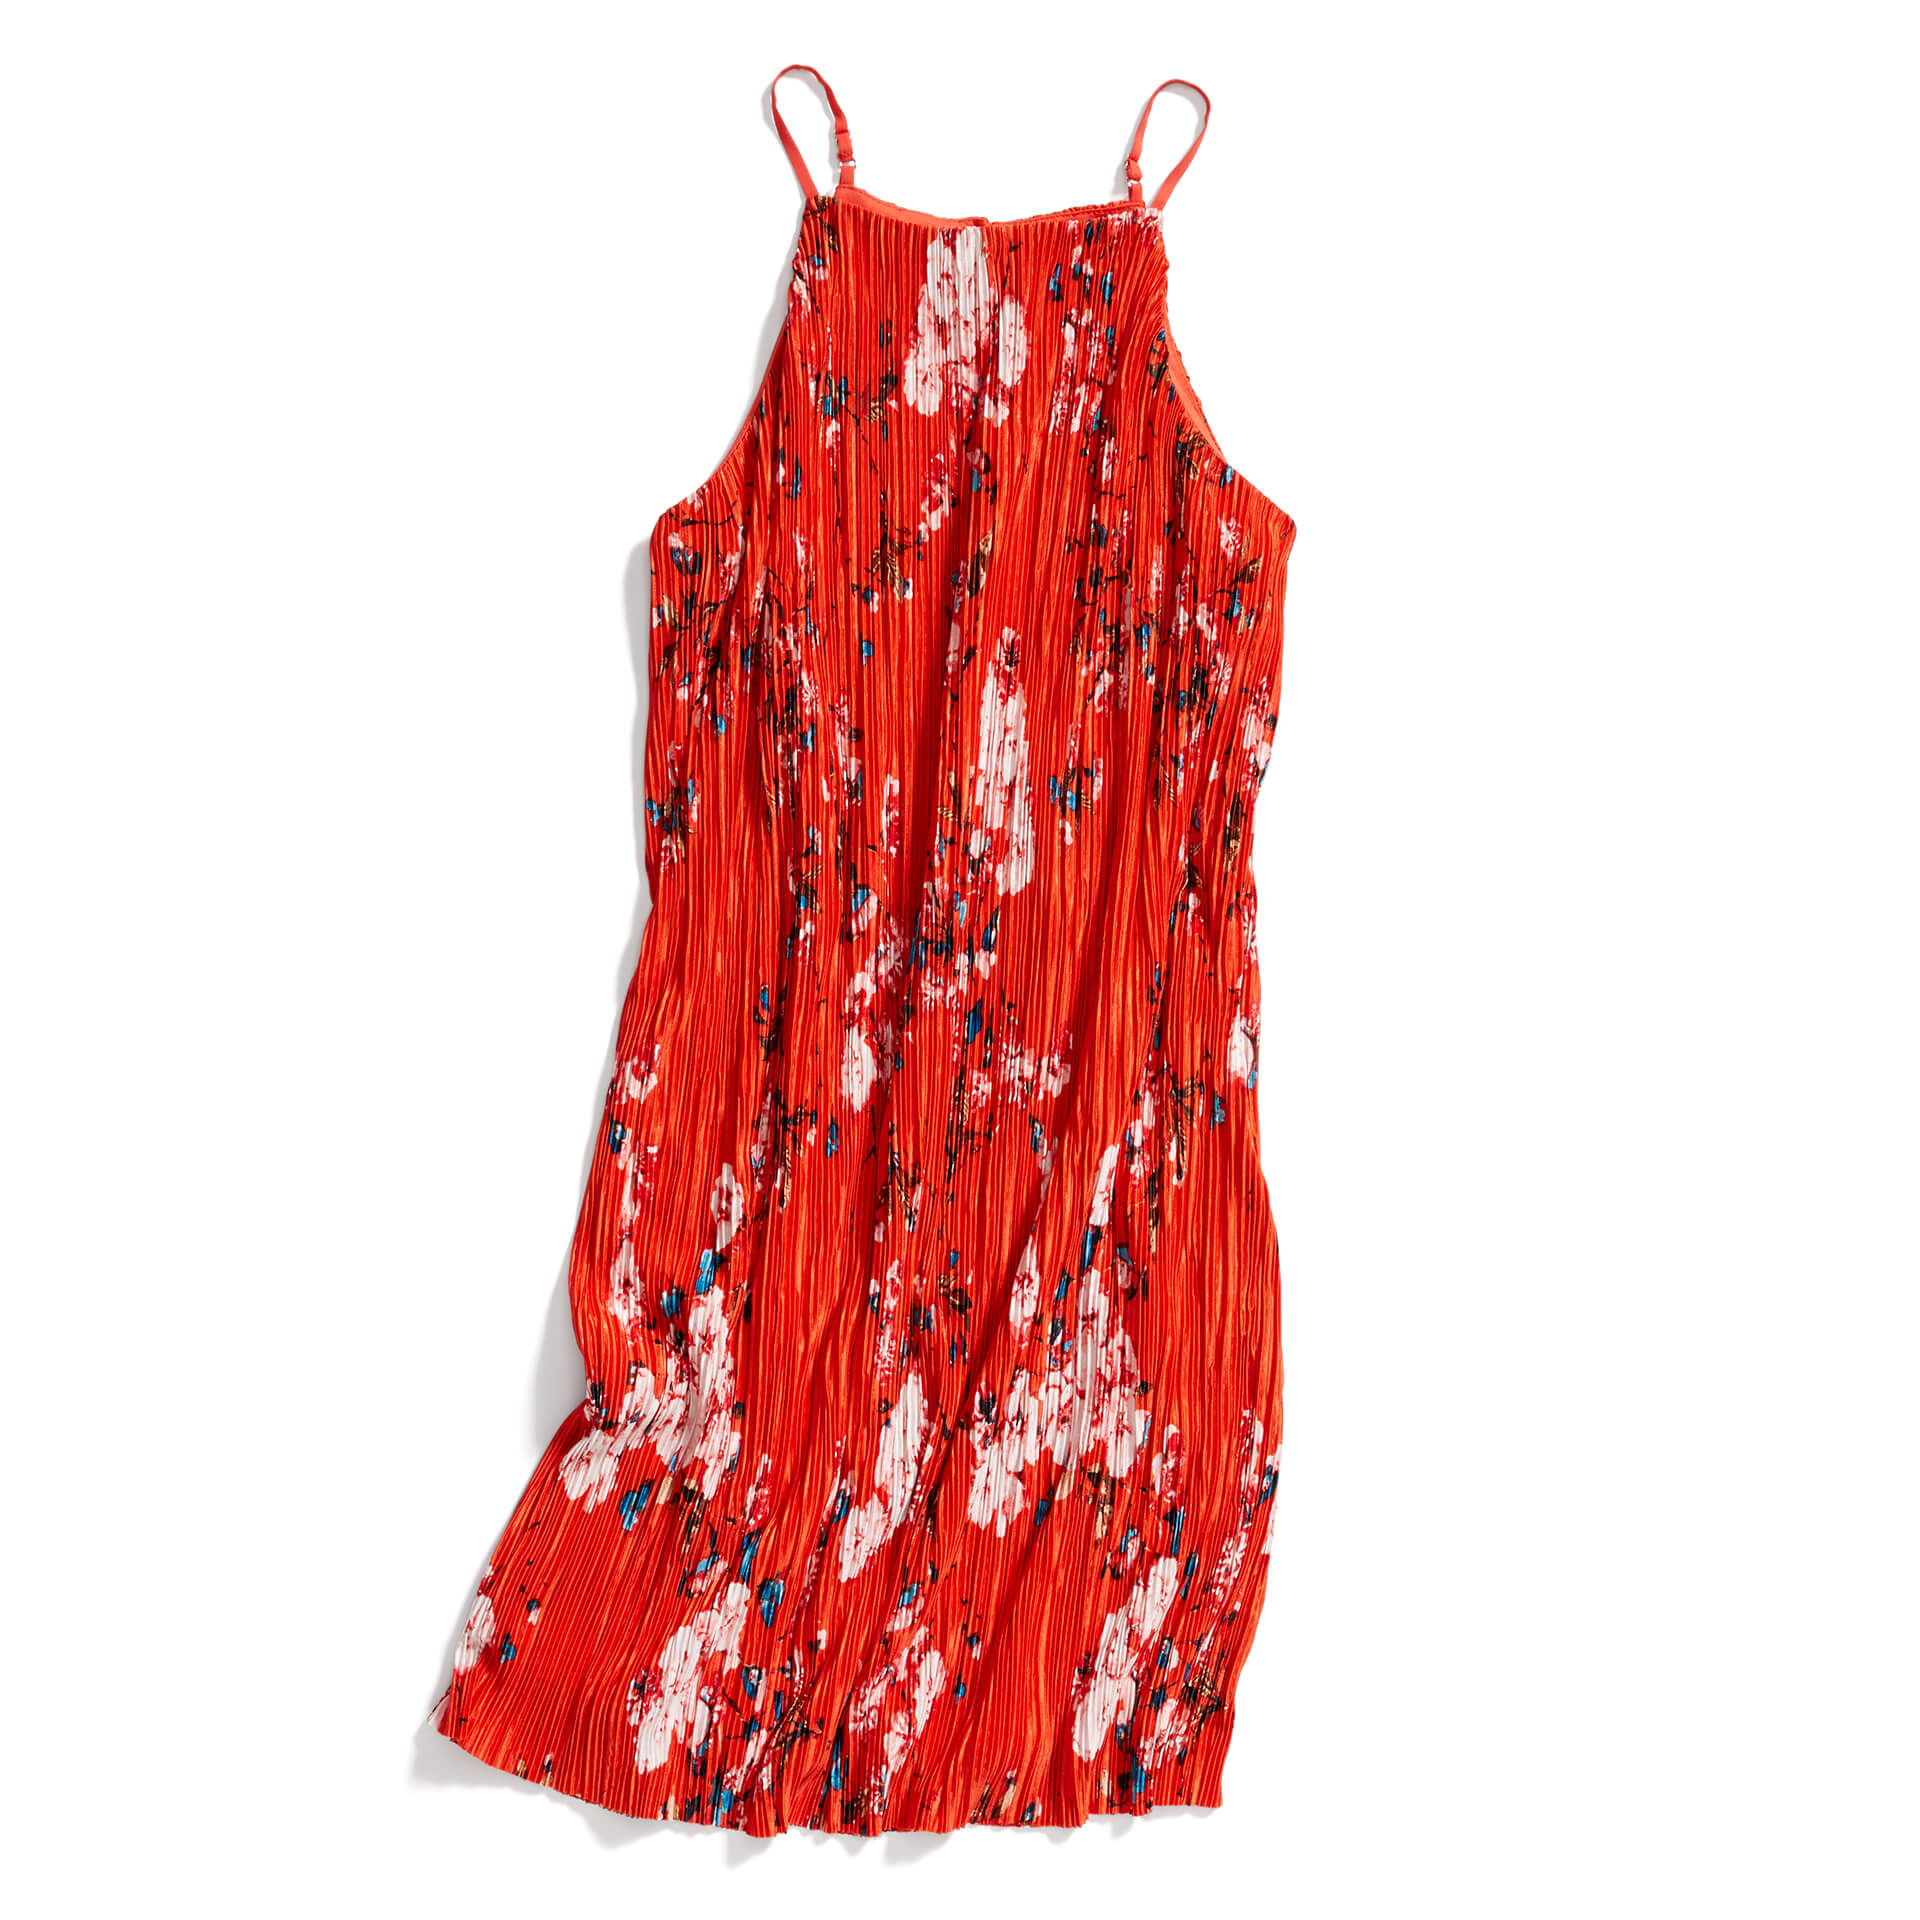 Stitch Fix Sundresses for Summer